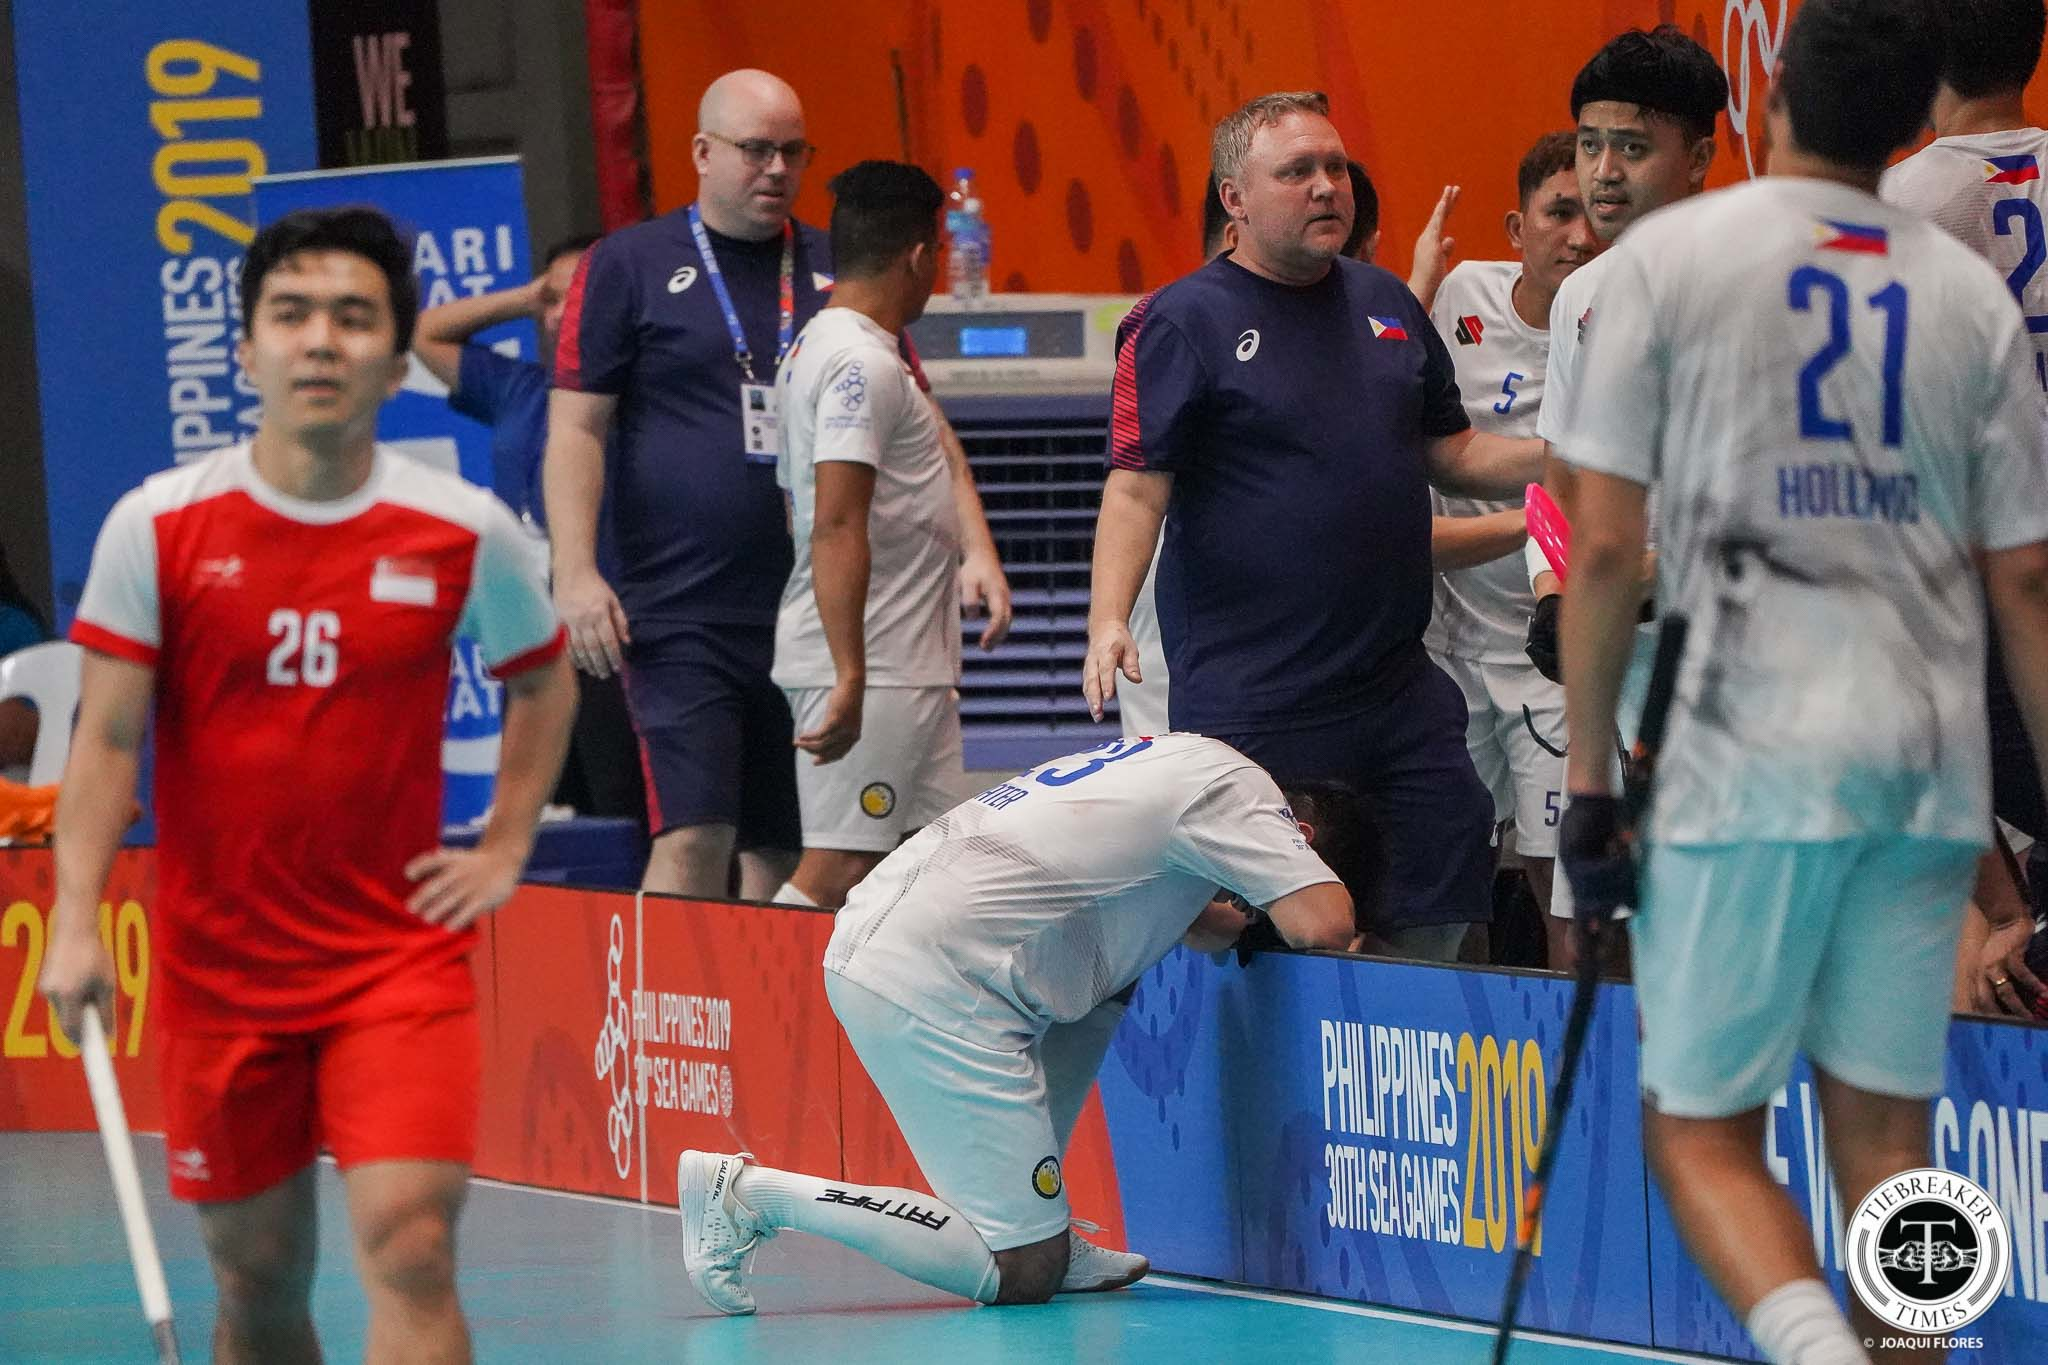 Tiebreaker Times Singapore quashes Philippines' gold hope in SEA Games Men's Floorball 2019 SEA Games Floorball News  SIngapore (Floorball) Ryan Hallden Philippine Men's National Floorball Team Christian Shoultze 2019 SEA Games - Floorball 2019 SEA Games